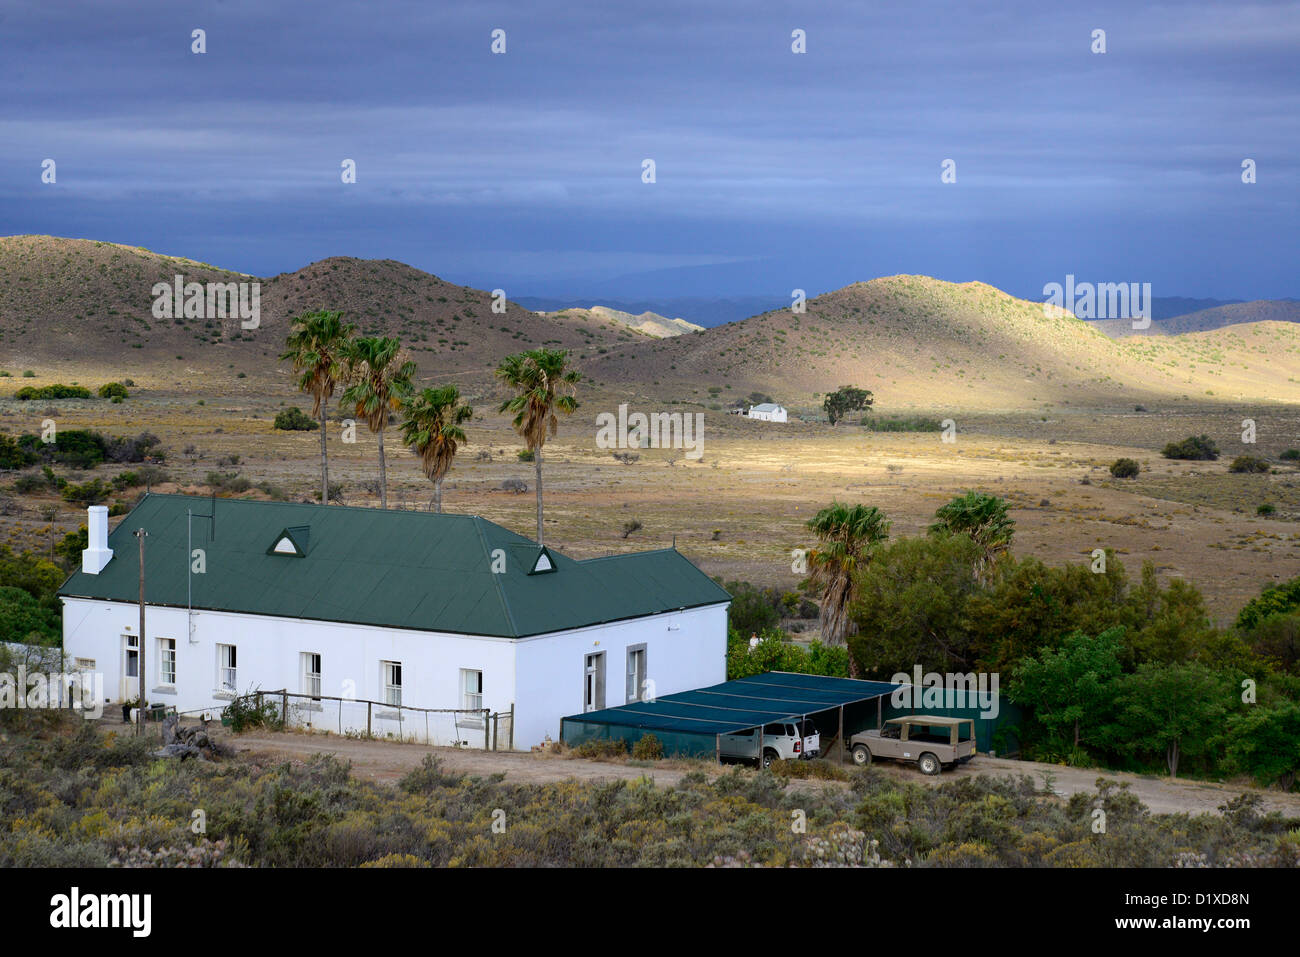 Old Karoo house near Warmwaterberg in the Klein Karoo, Western Cape South Africa - Stock Image